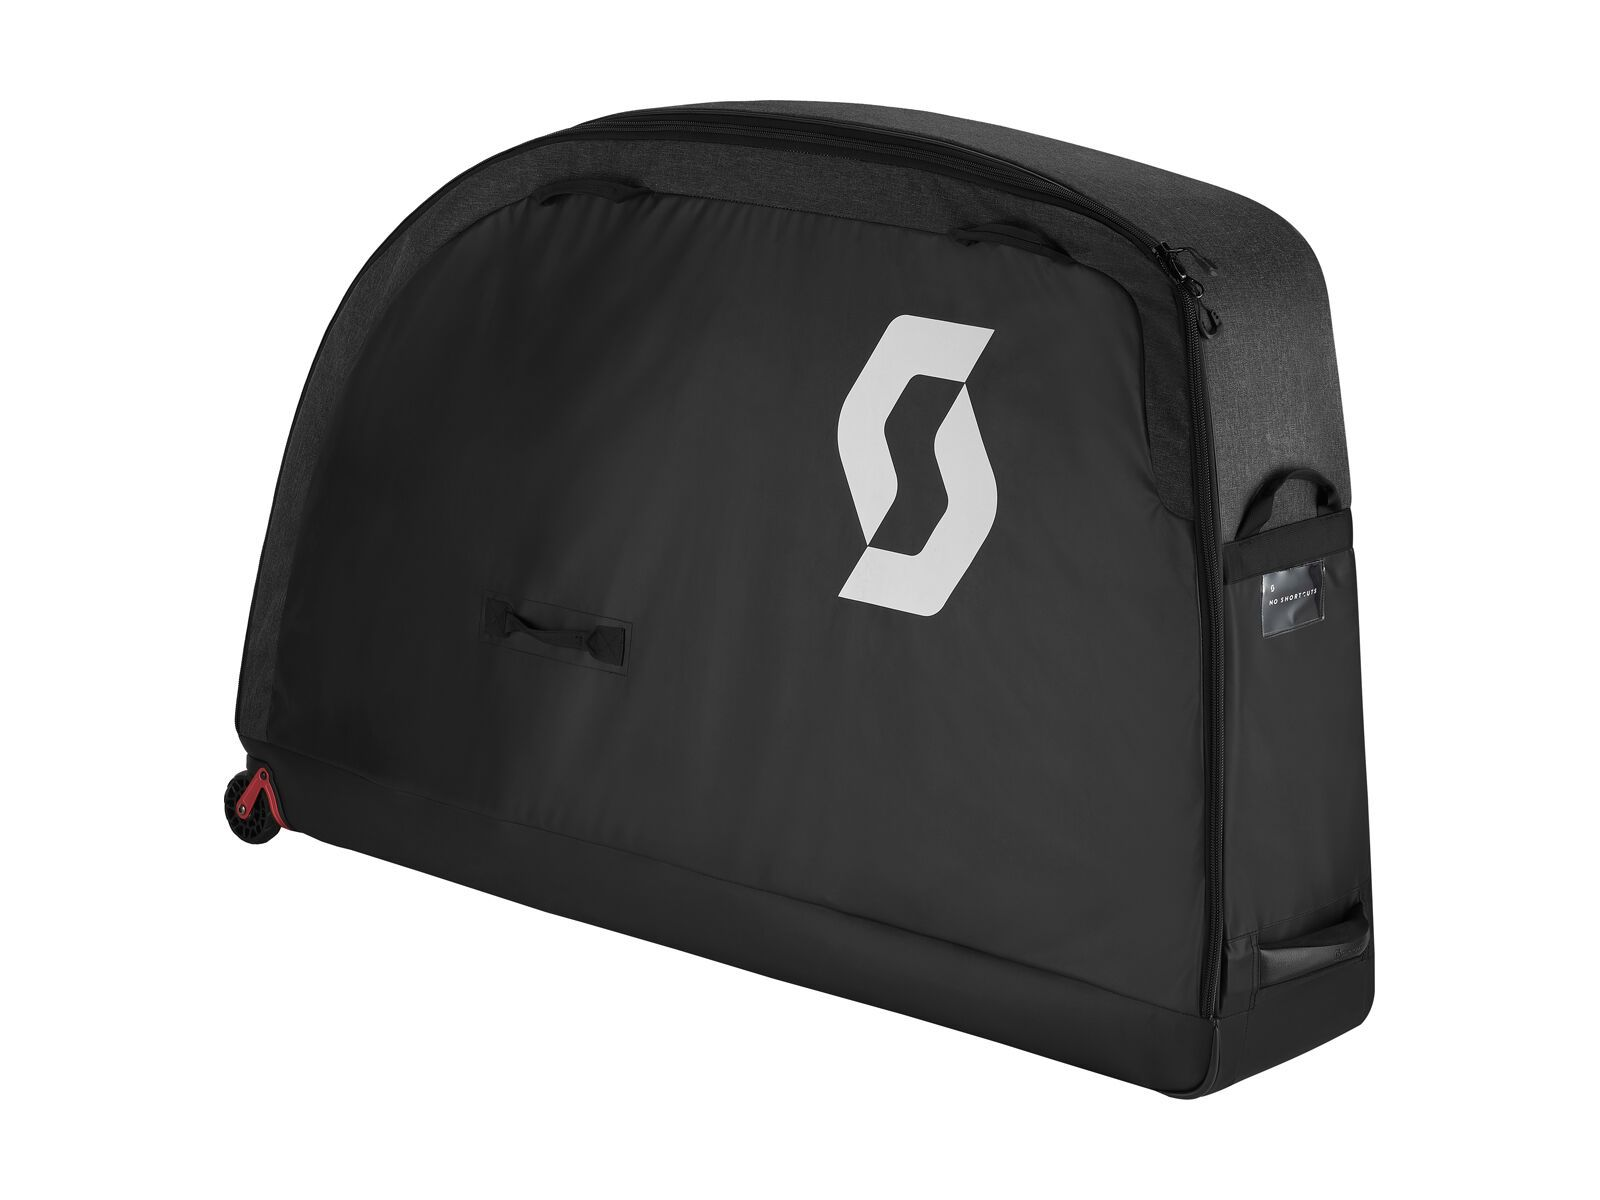 Scott Bike Transport Bag Premium 2.0, black - Fahrradtransporttasche 2645070001222